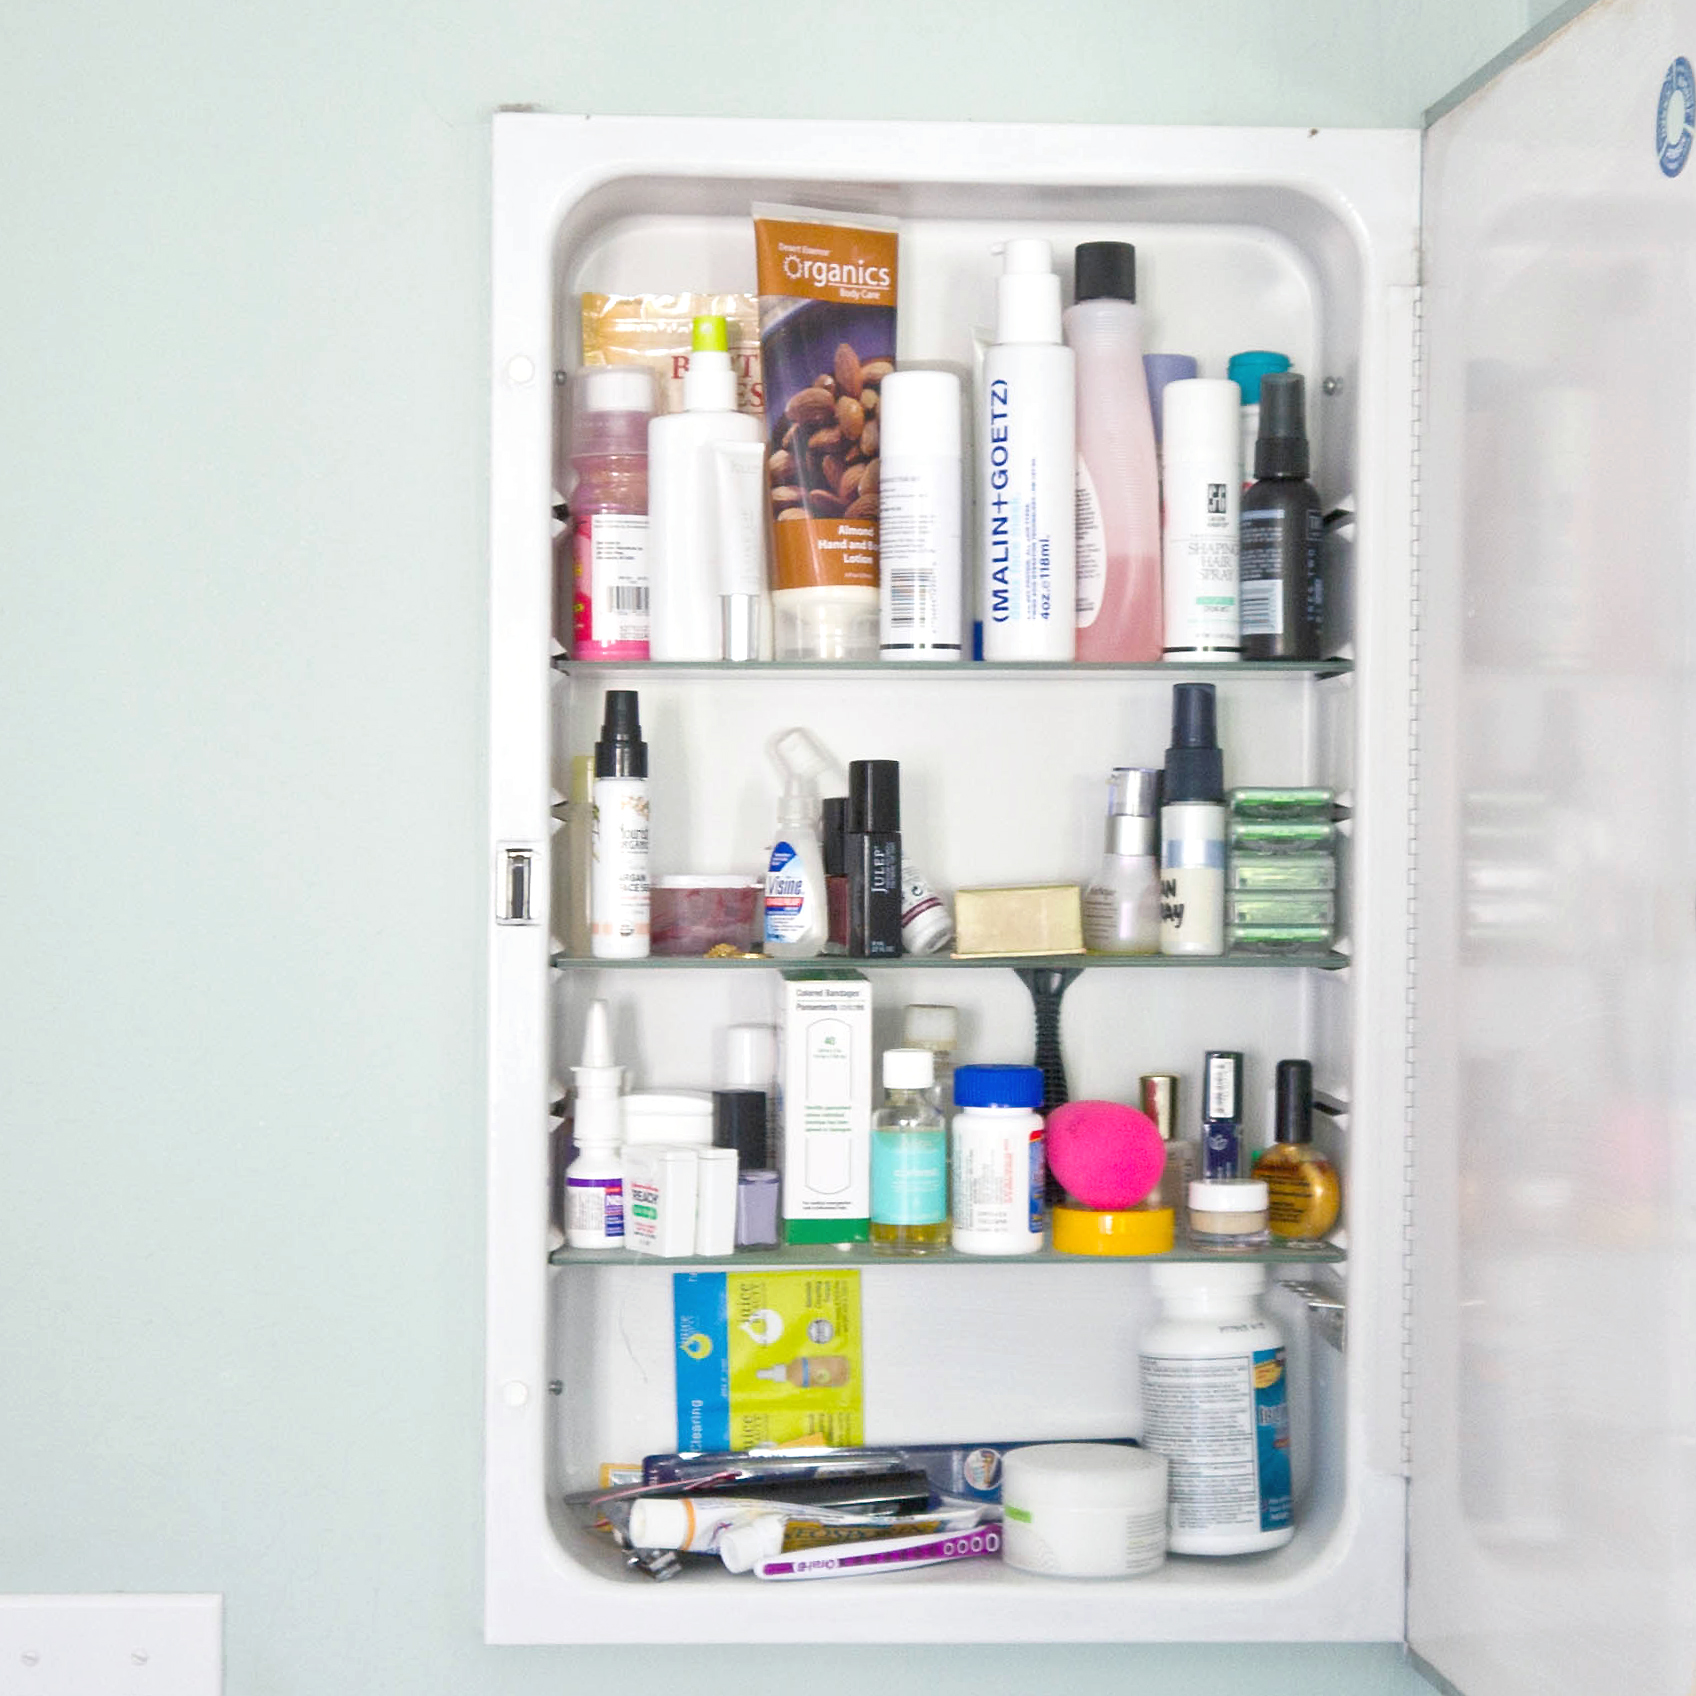 How to Organize a Medicine Cabinet Using a Spice Rack